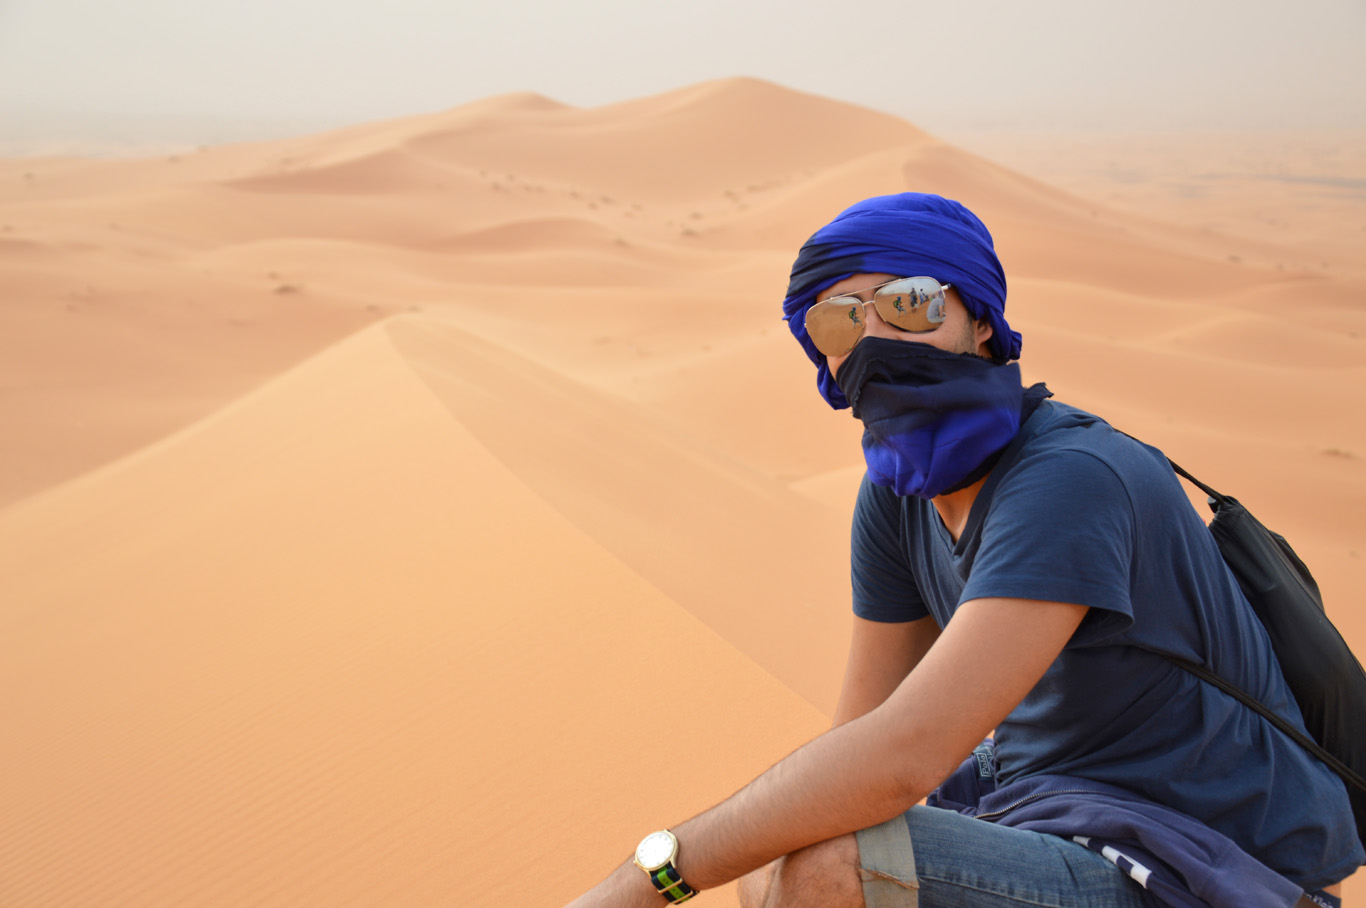 Bedouin scarf - protection from wind